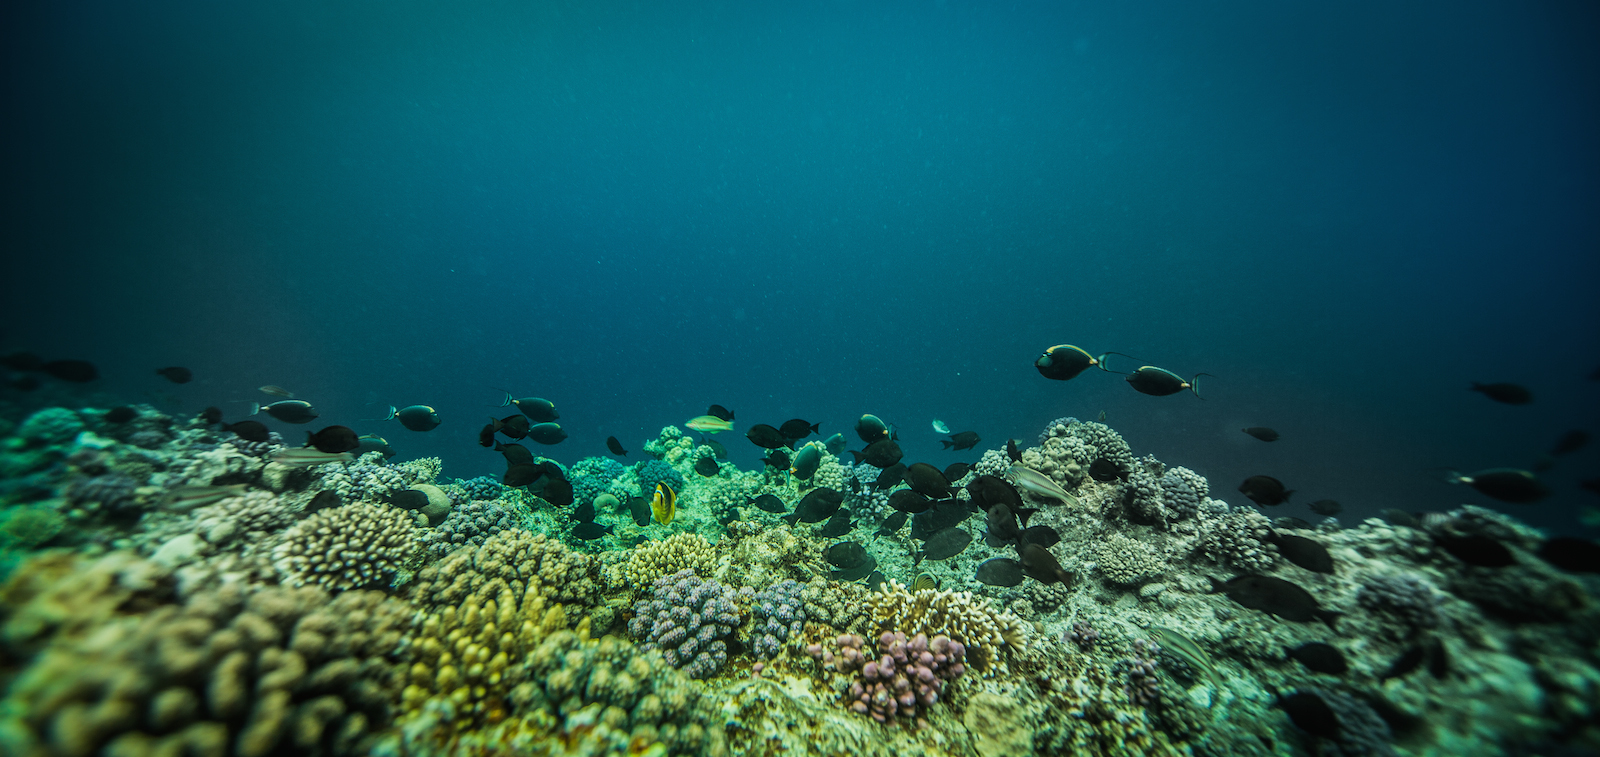 Book your Fish Identitification Course with Ducks Diving Superior & explore the beauty beneath the waves..